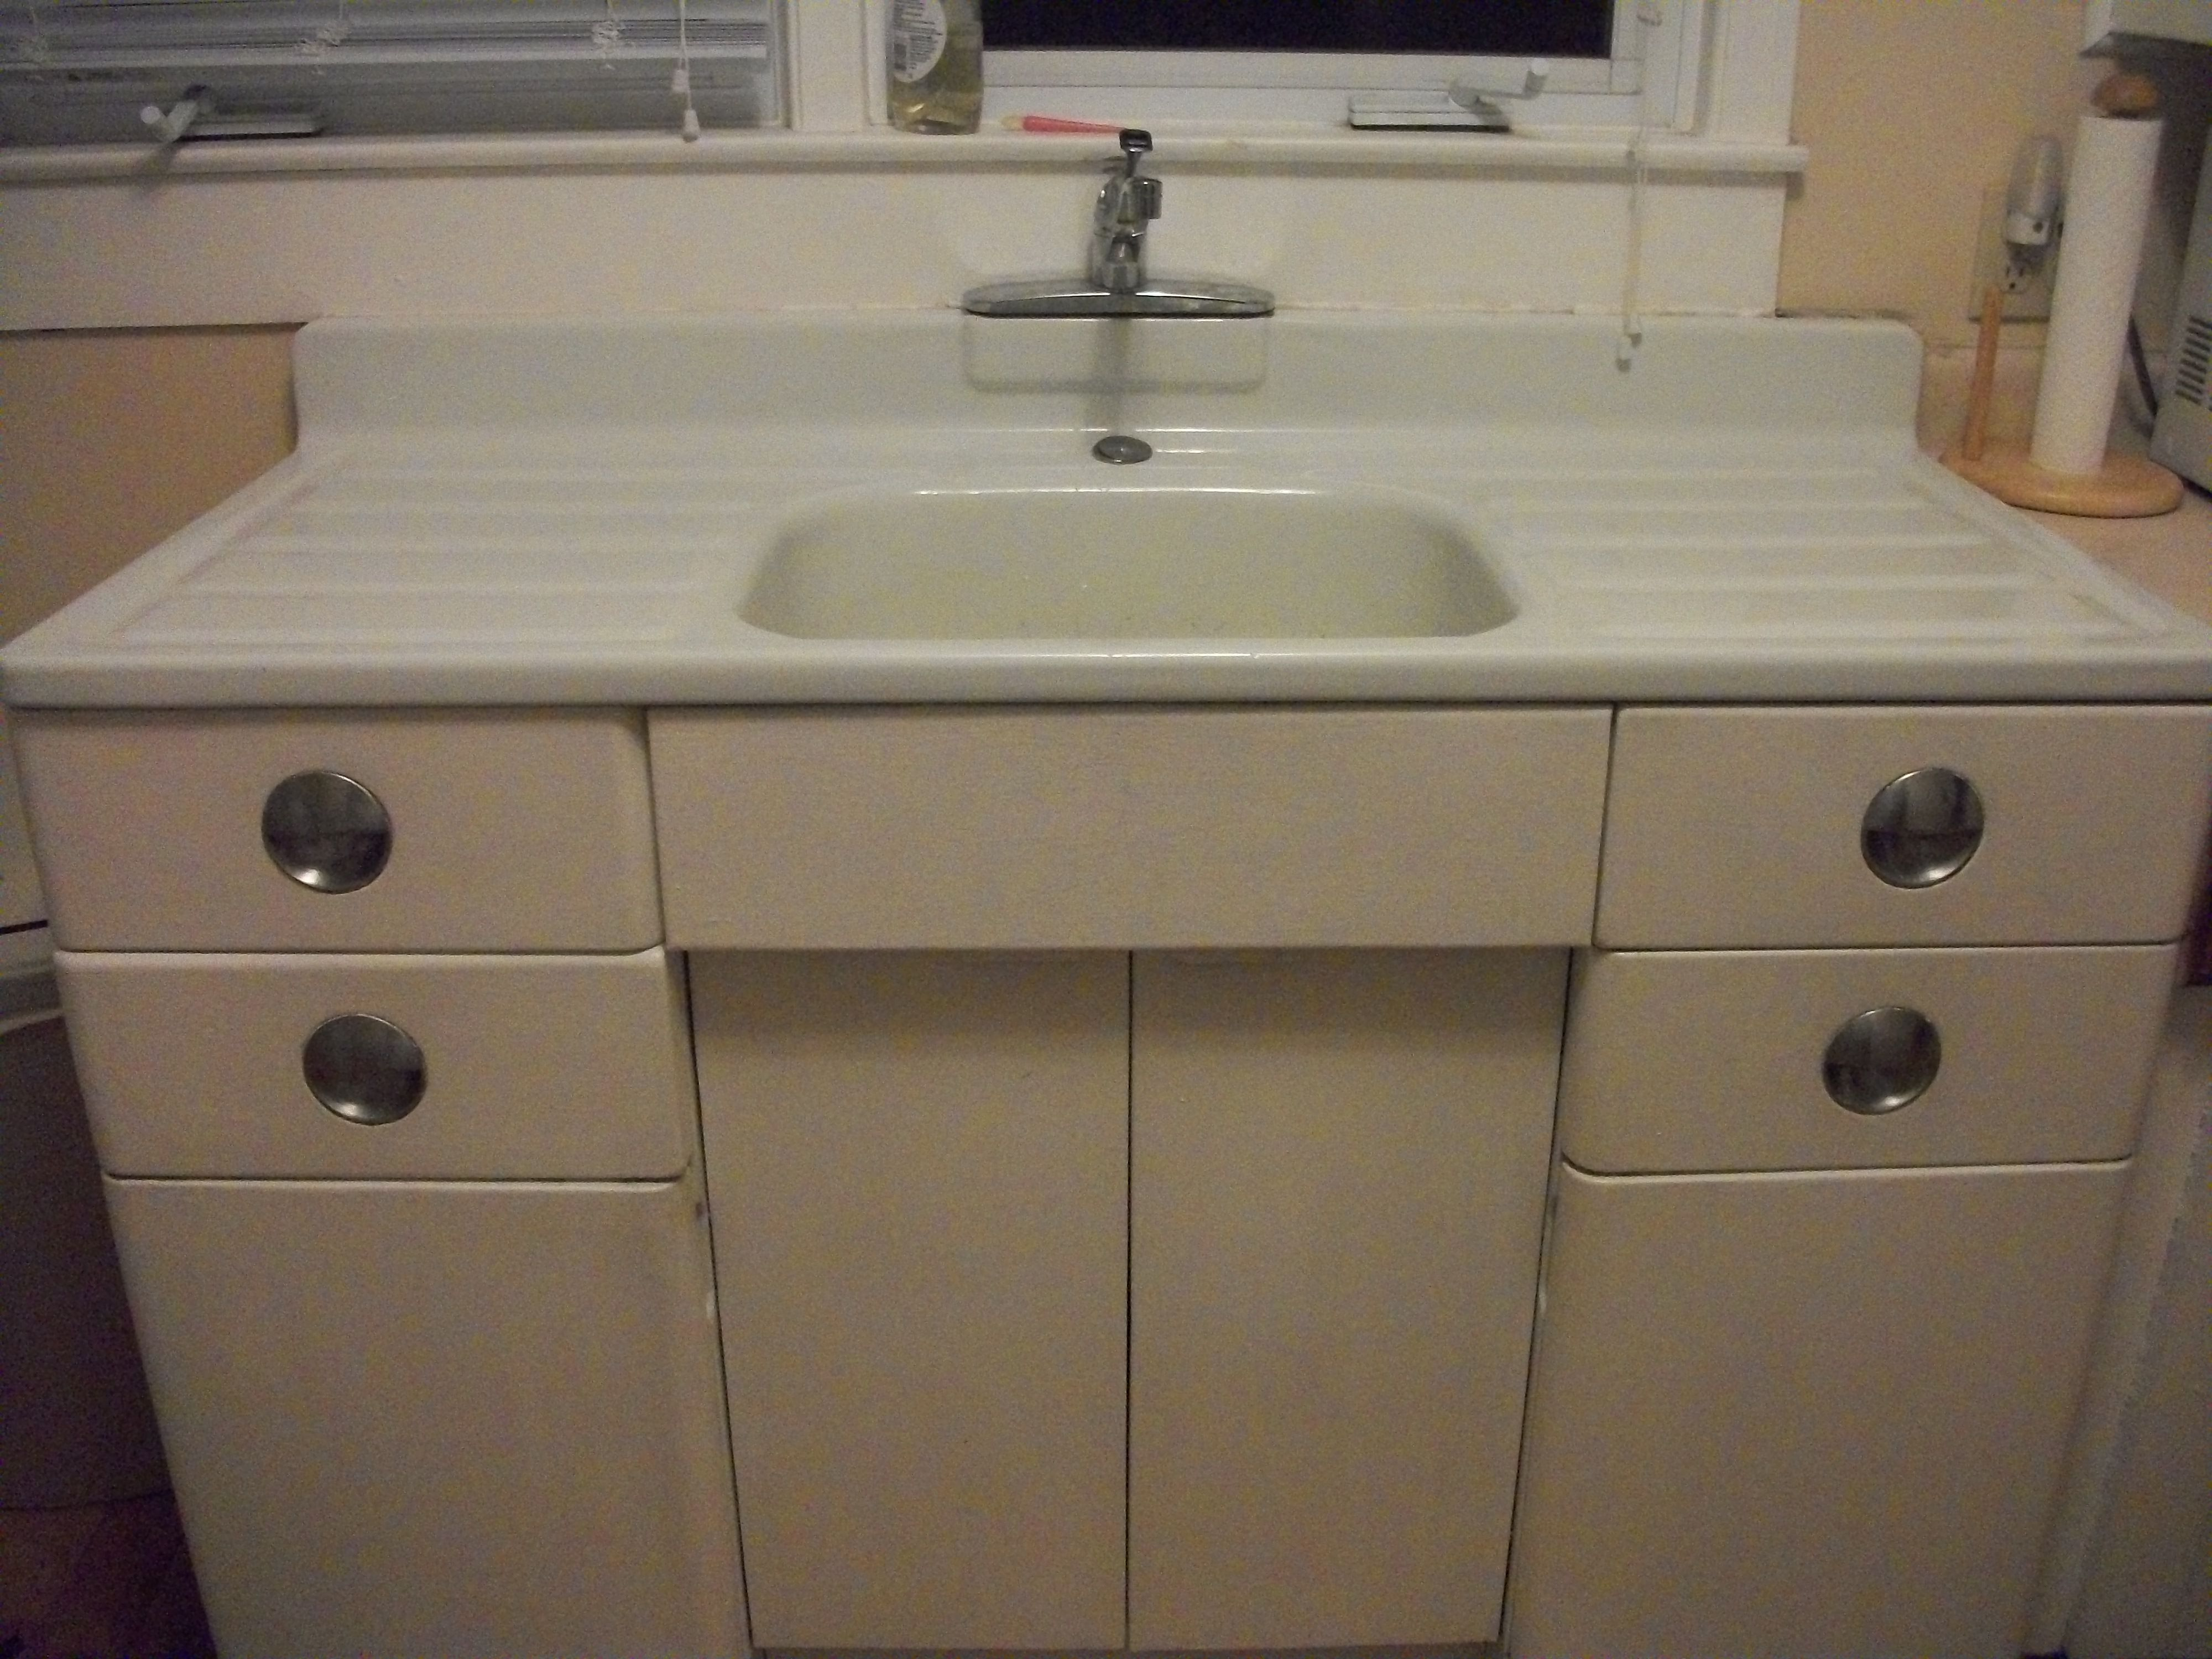 sink kitchen cabinets Metal Kitchen Cabinet and Porcelain Sink For Sale Antiques com s Sears Roebuck